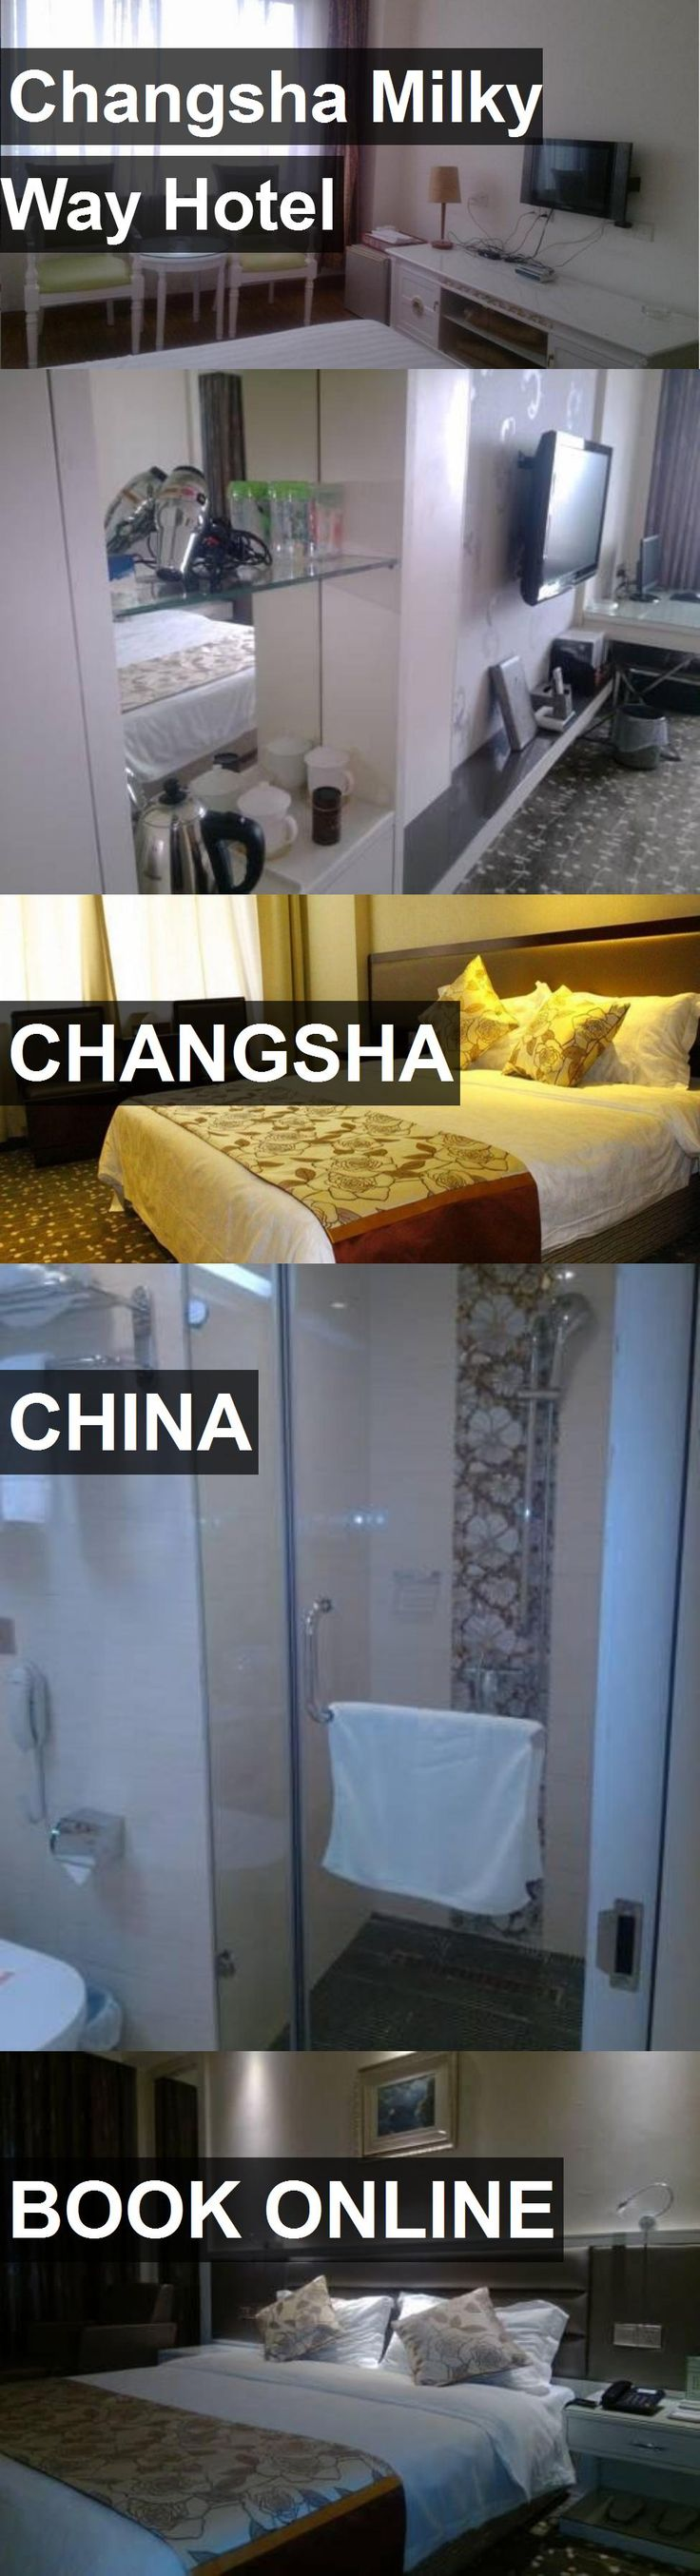 Hotel Changsha Milky Way Hotel in Changsha, China. For more information, photos, reviews and best prices please follow the link. #China #Changsha #ChangshaMilkyWayHotel #hotel #travel #vacation